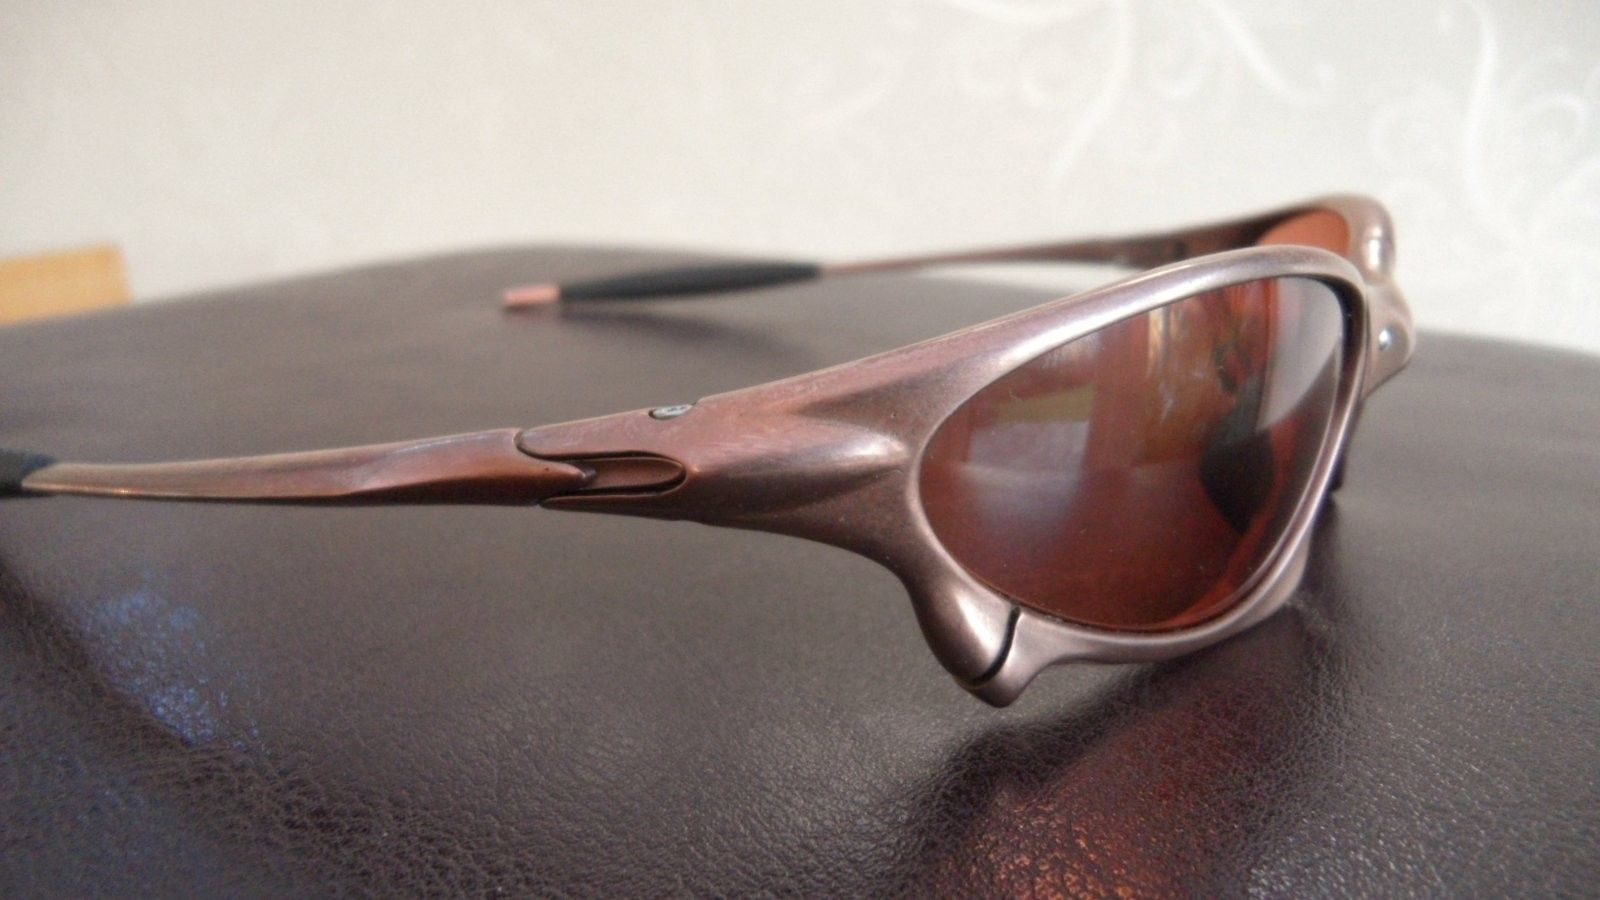 Penny Copper with VR28 lenses. Correctly Labelled Box but wrong serial. - SAM_0002.JPG